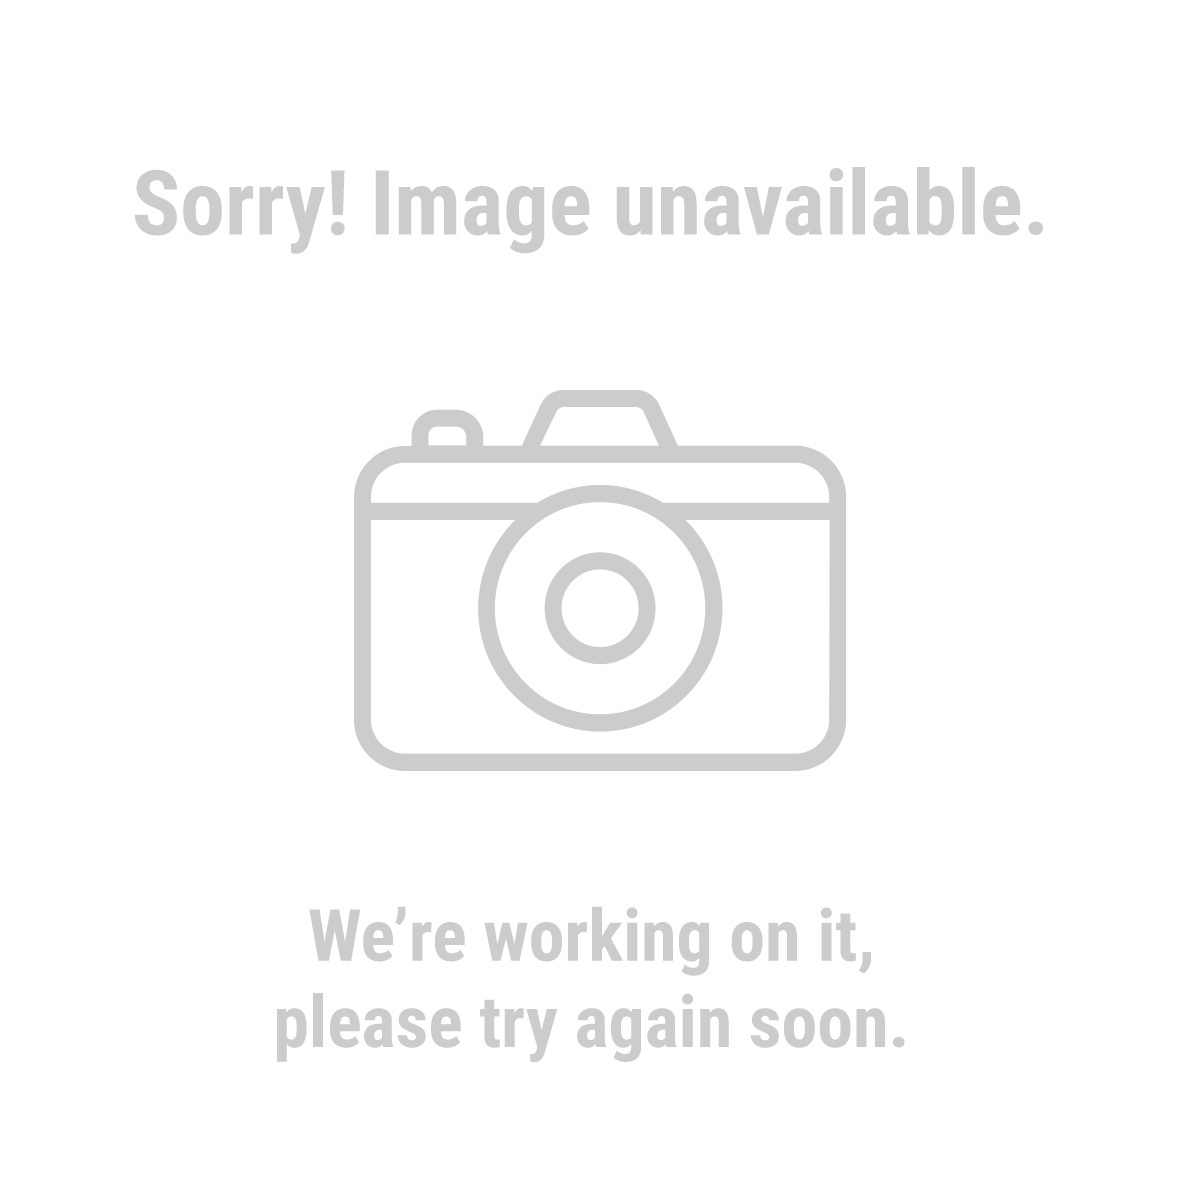 Pacific Hydrostar 68451 1/2 Horsepower Cast Iron Sewage Pump with Tethered Float Switch